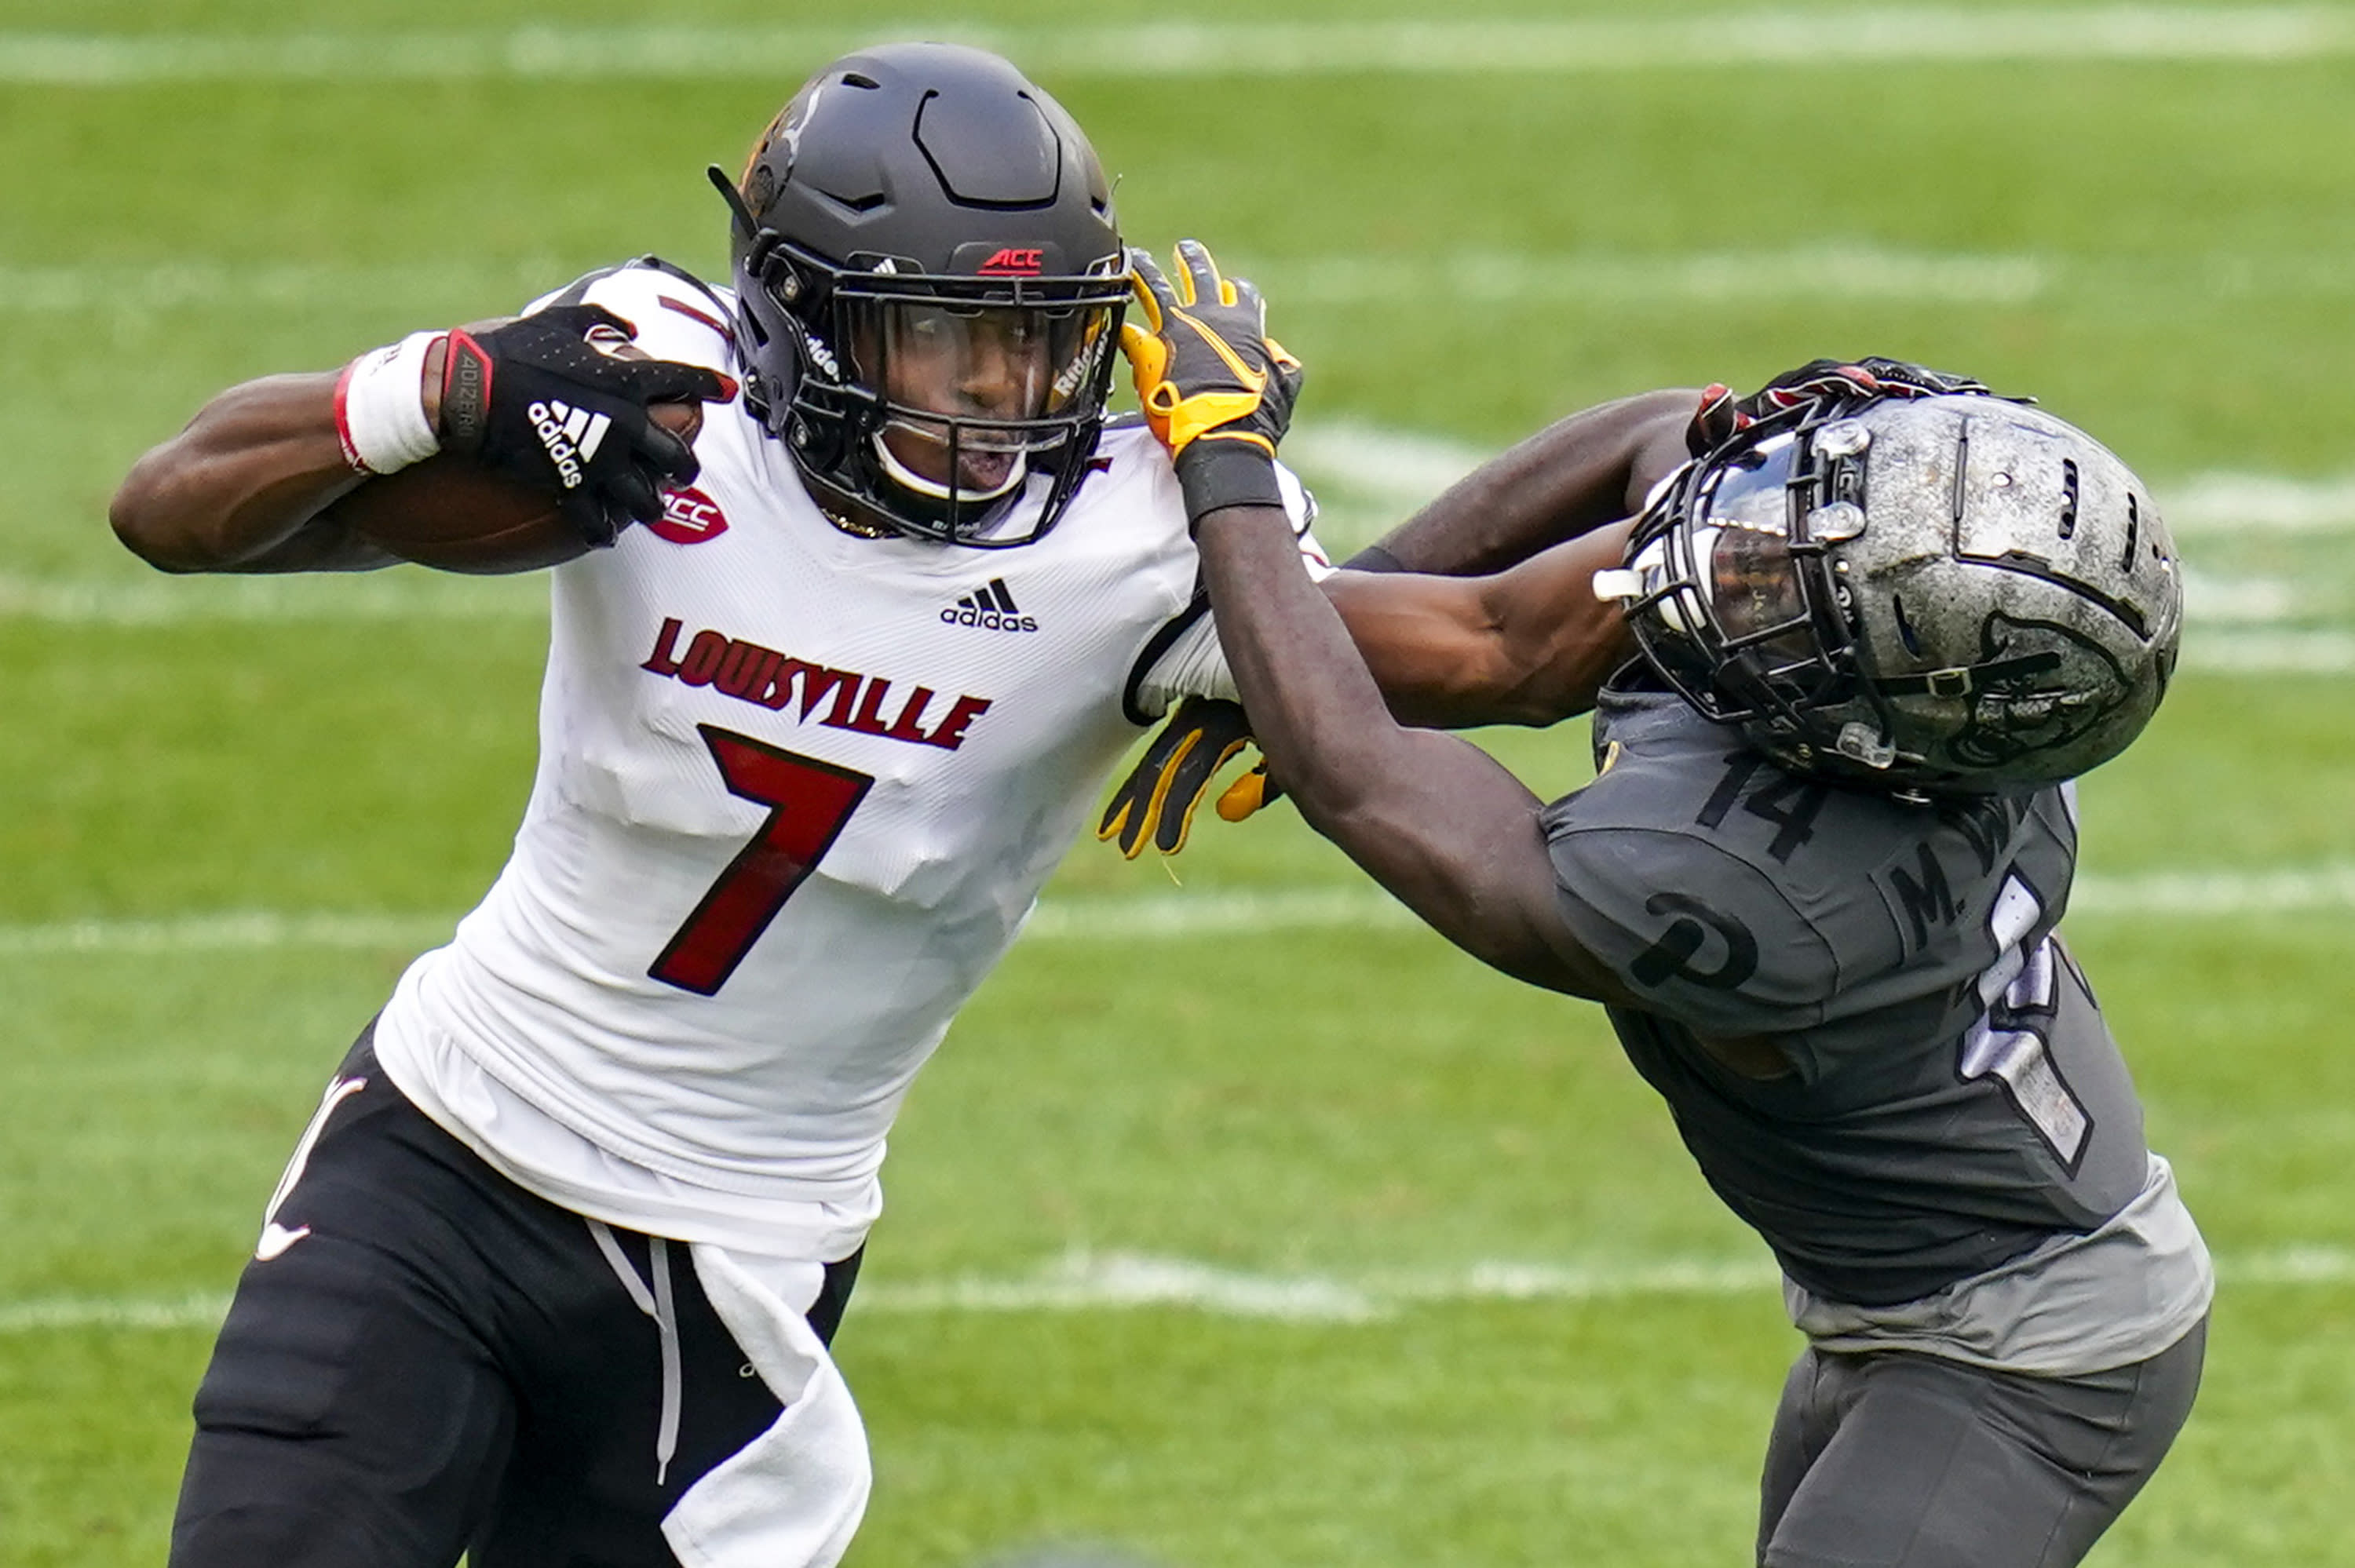 Louisville wide receiver Dez Fitzpatrick (7) stiff-arms Pittsburgh defensive back Marquis Williams (14) as he tries for more yards after a catch during the second half of an NCAA college football game, Saturday, Sept. 26, 2020, in Pittsburgh. Pittsburgh won 23-20. (AP Photo/Keith Srakocic)